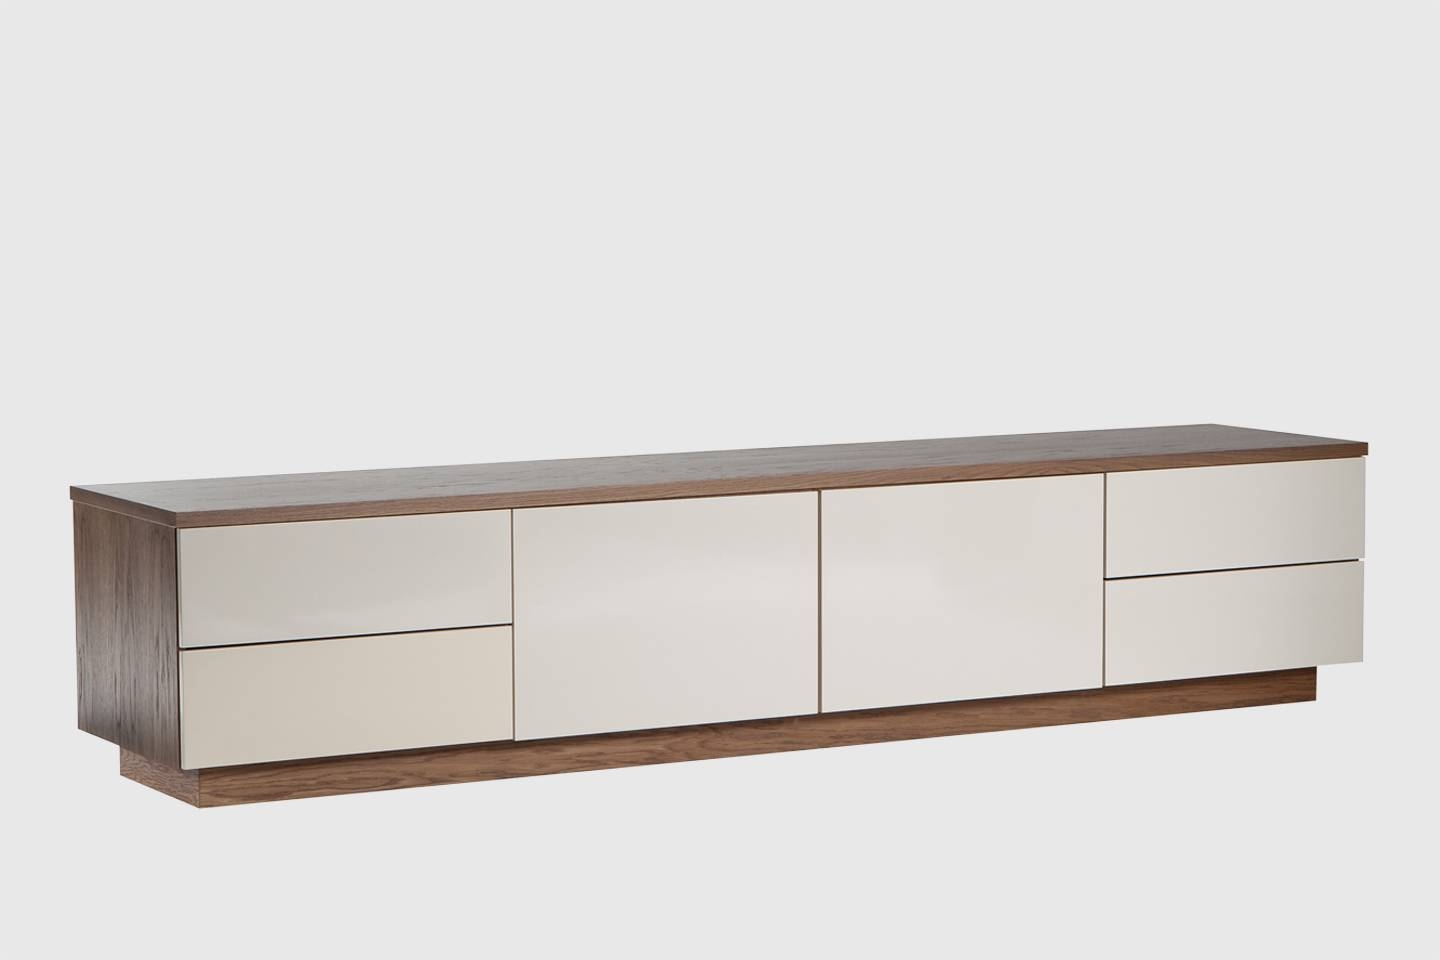 Sideboards Archives – Michael Northcroft Inside Small Low Sideboards (View 14 of 15)